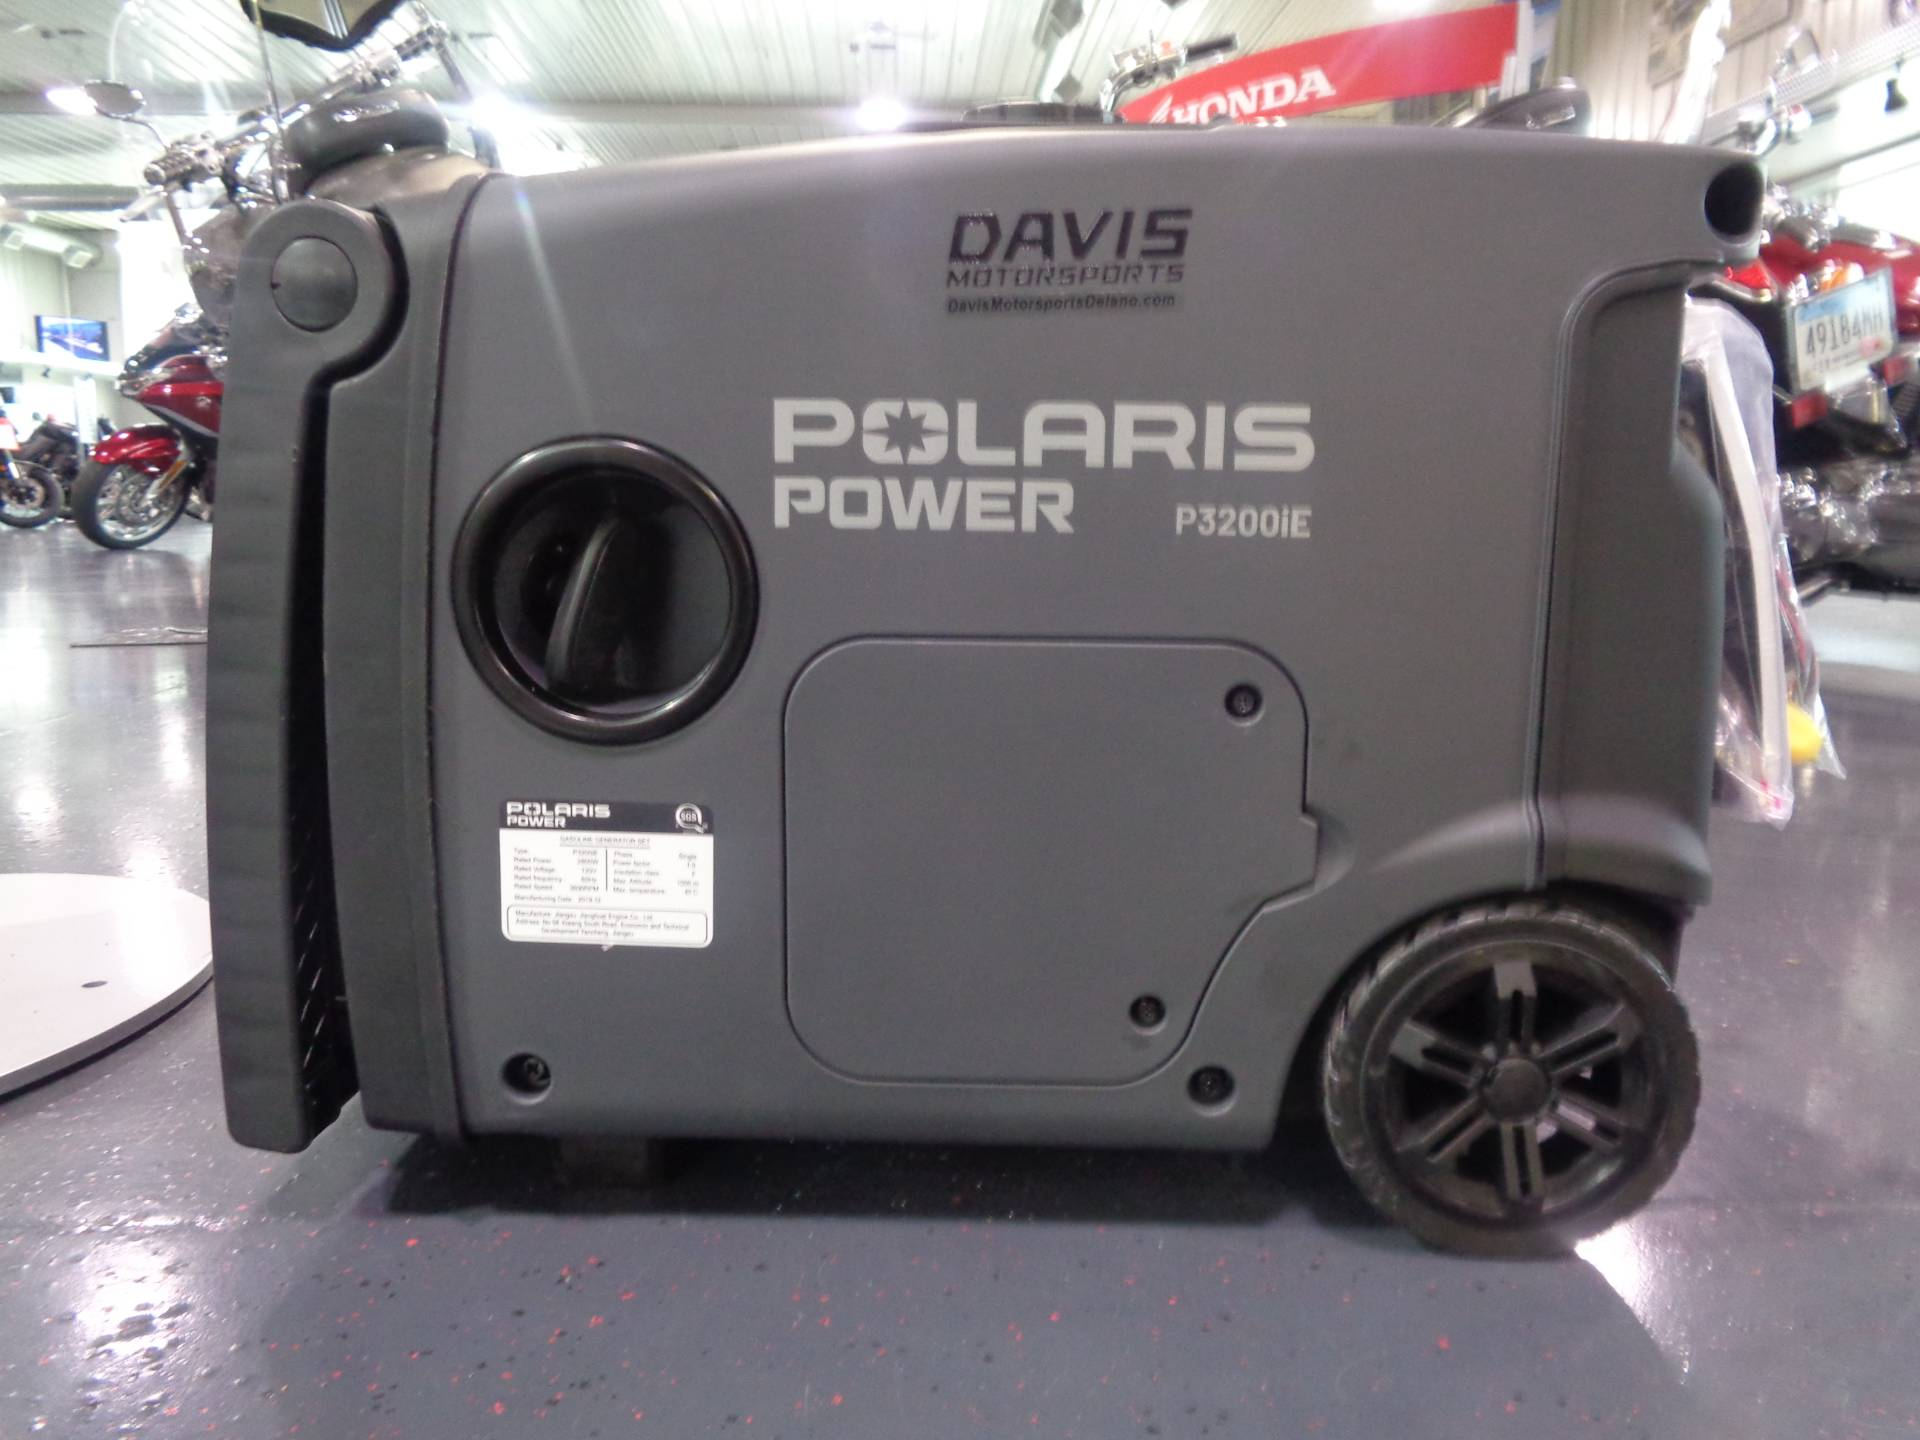 Polaris Power P3200iE Polaris Power Portable Inverter Generator in Delano, Minnesota - Photo 1